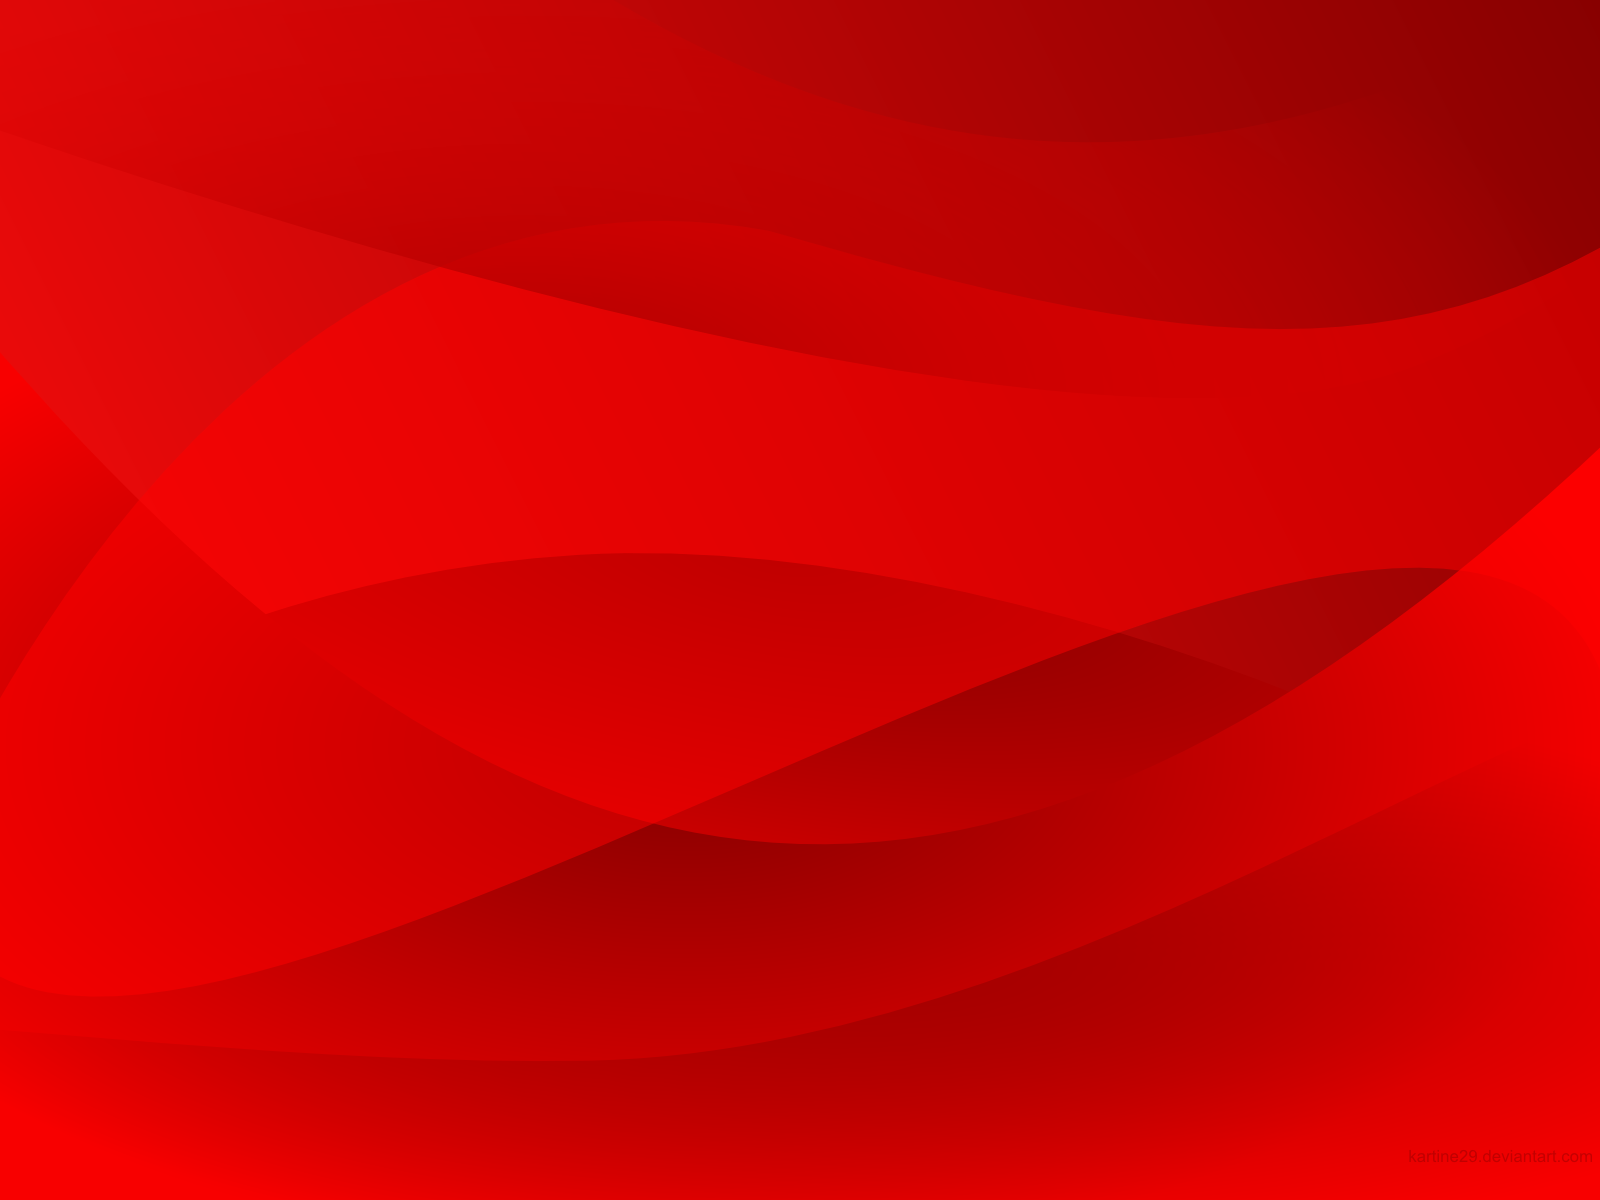 Red   Red Abstract 1600x1200 By Kartine29 On DeviantART   Red Wallpaper,  Abstract, Abstract Wallpaper